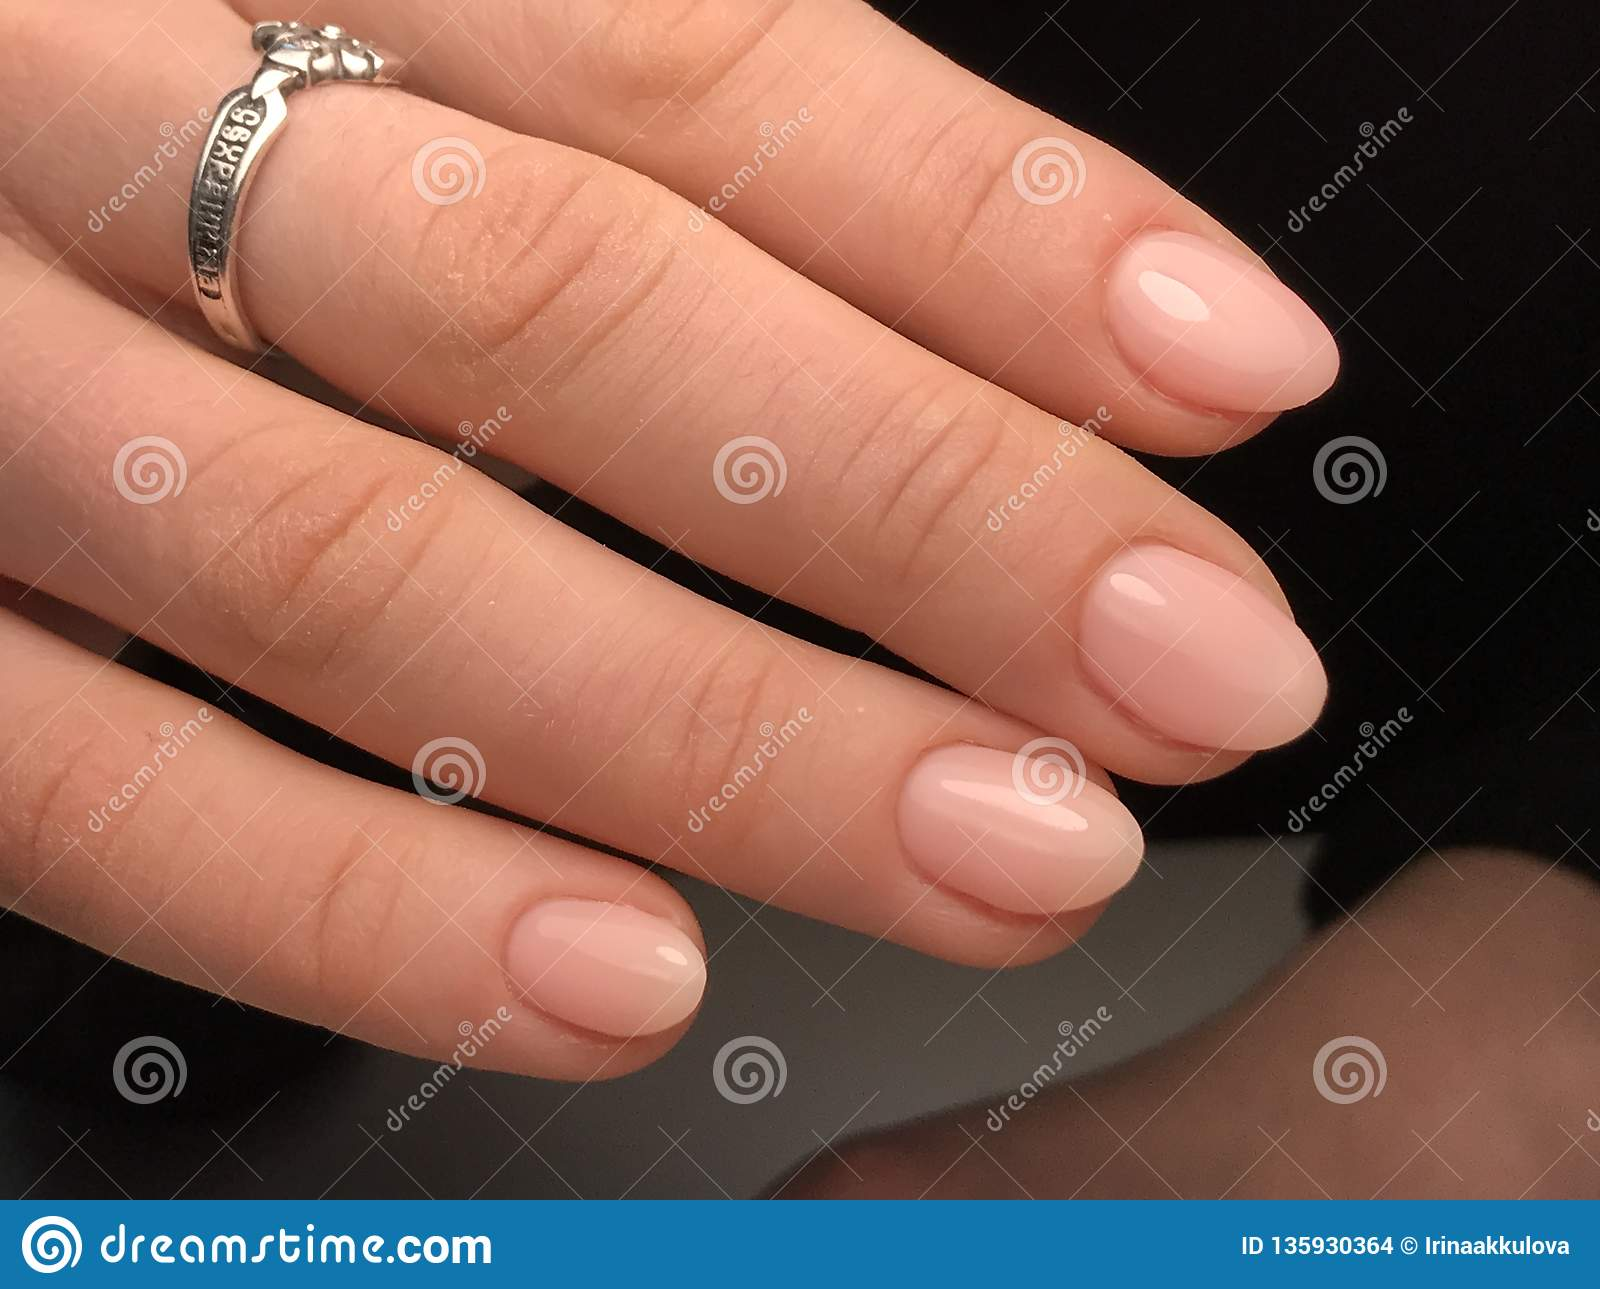 Cute nude nails stock photo. Image of heart, cute, manicure - 135930364